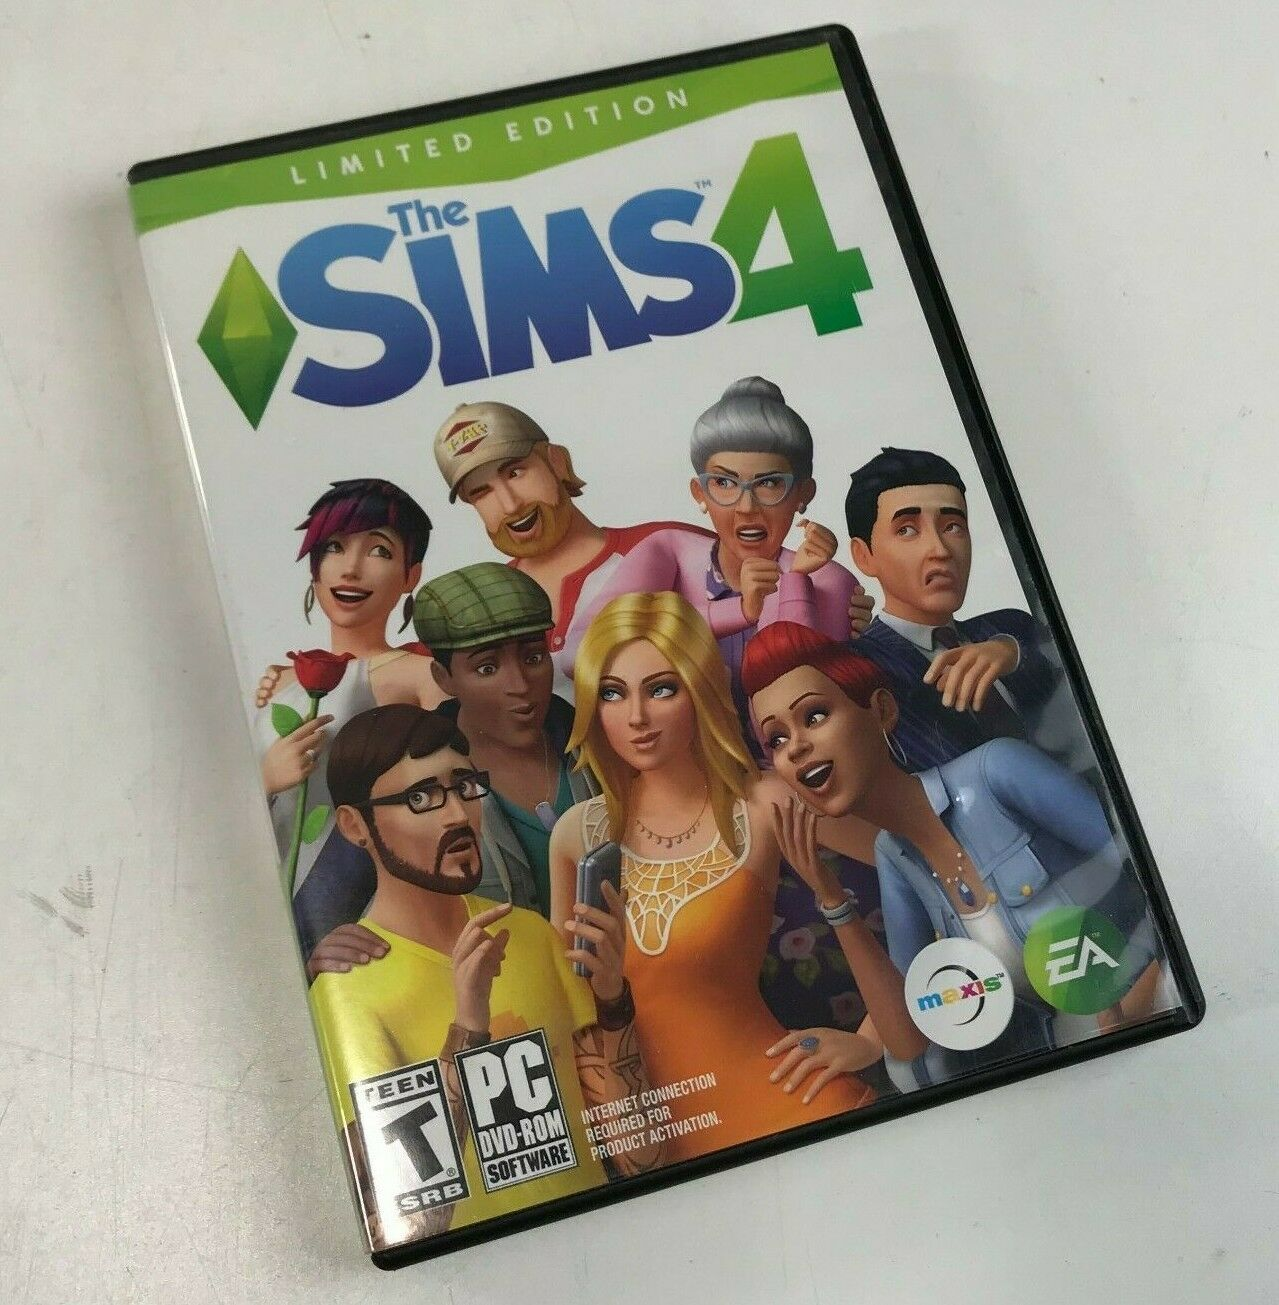 The Sims 4, 2 Discs DVD-ROM Video Game PC, Maxis and EA Games